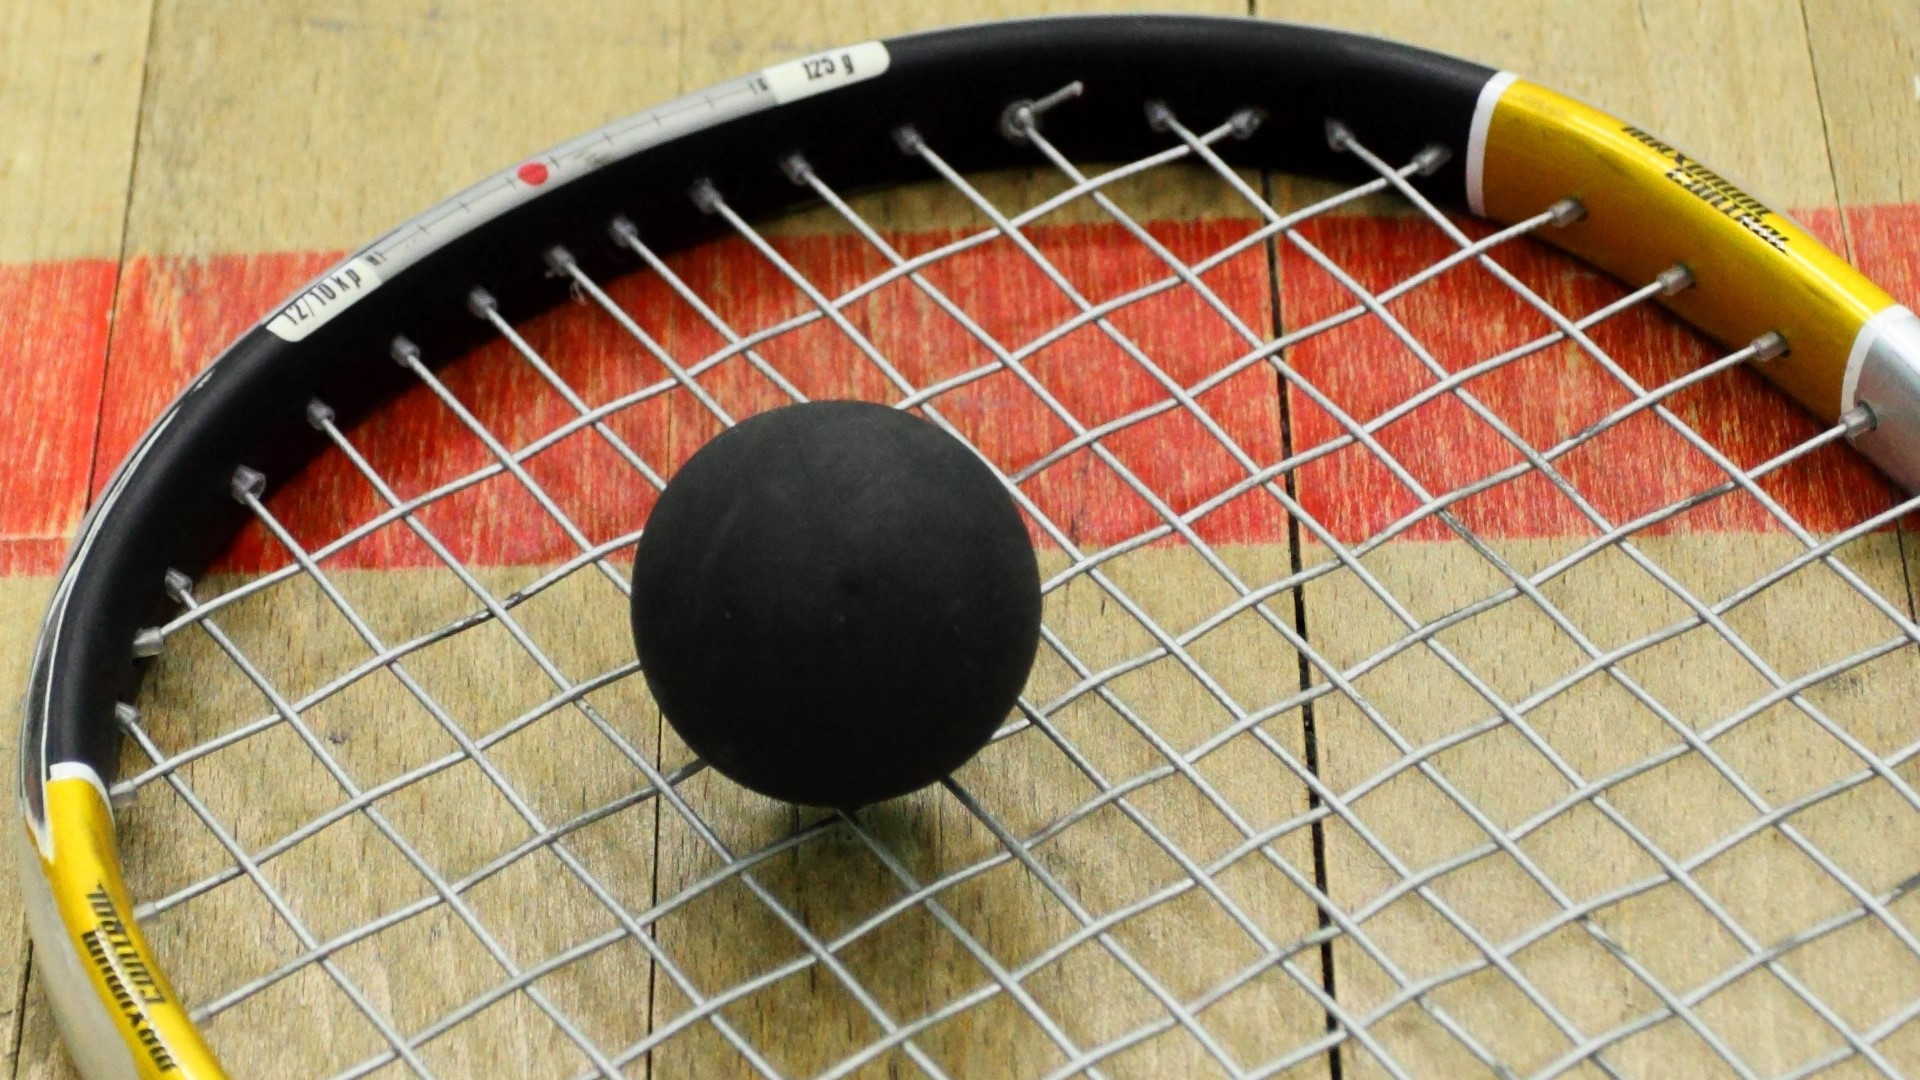 squash ball on a raquet